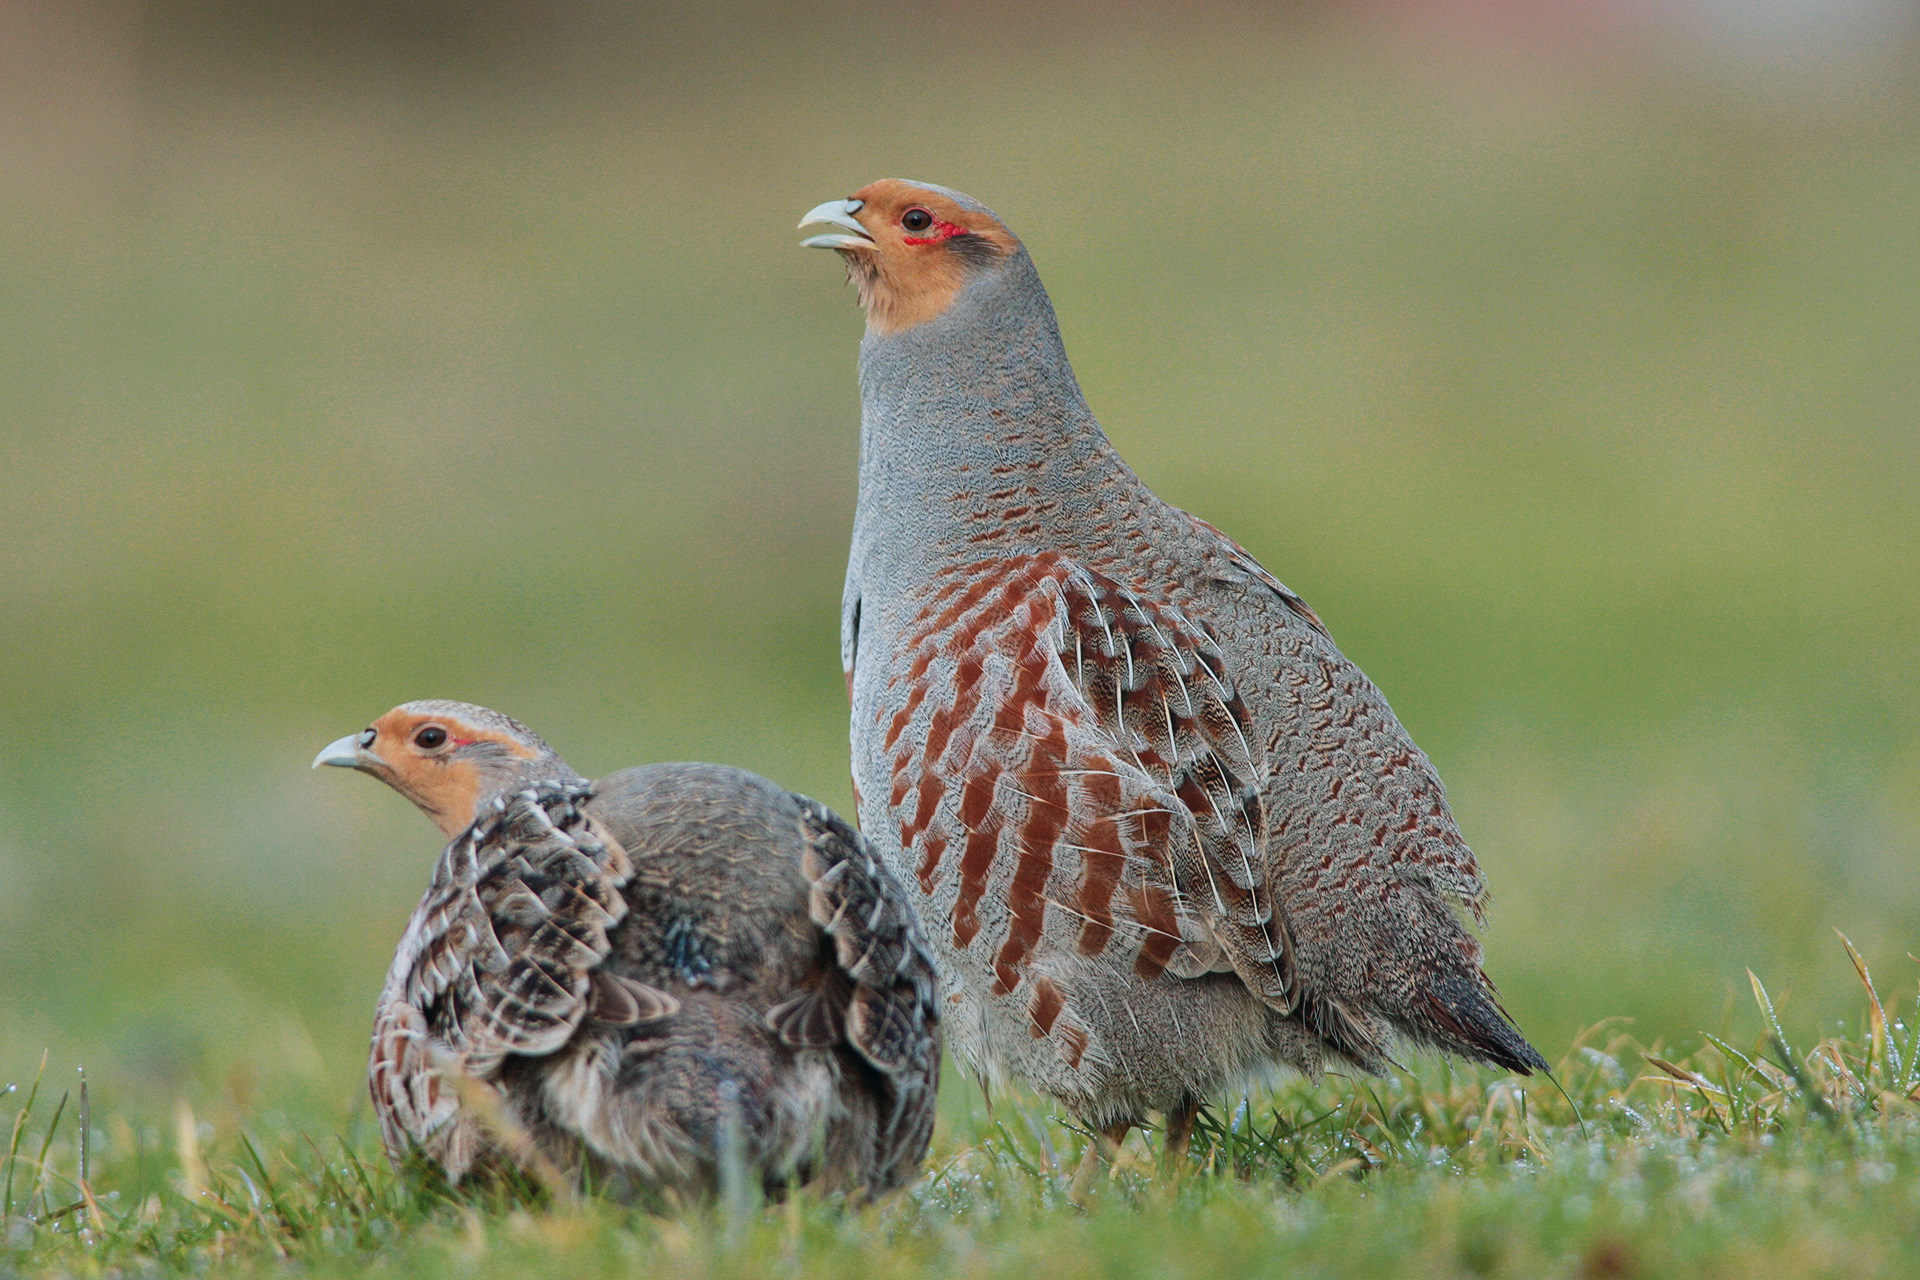 Two partridges sitting in grassland.